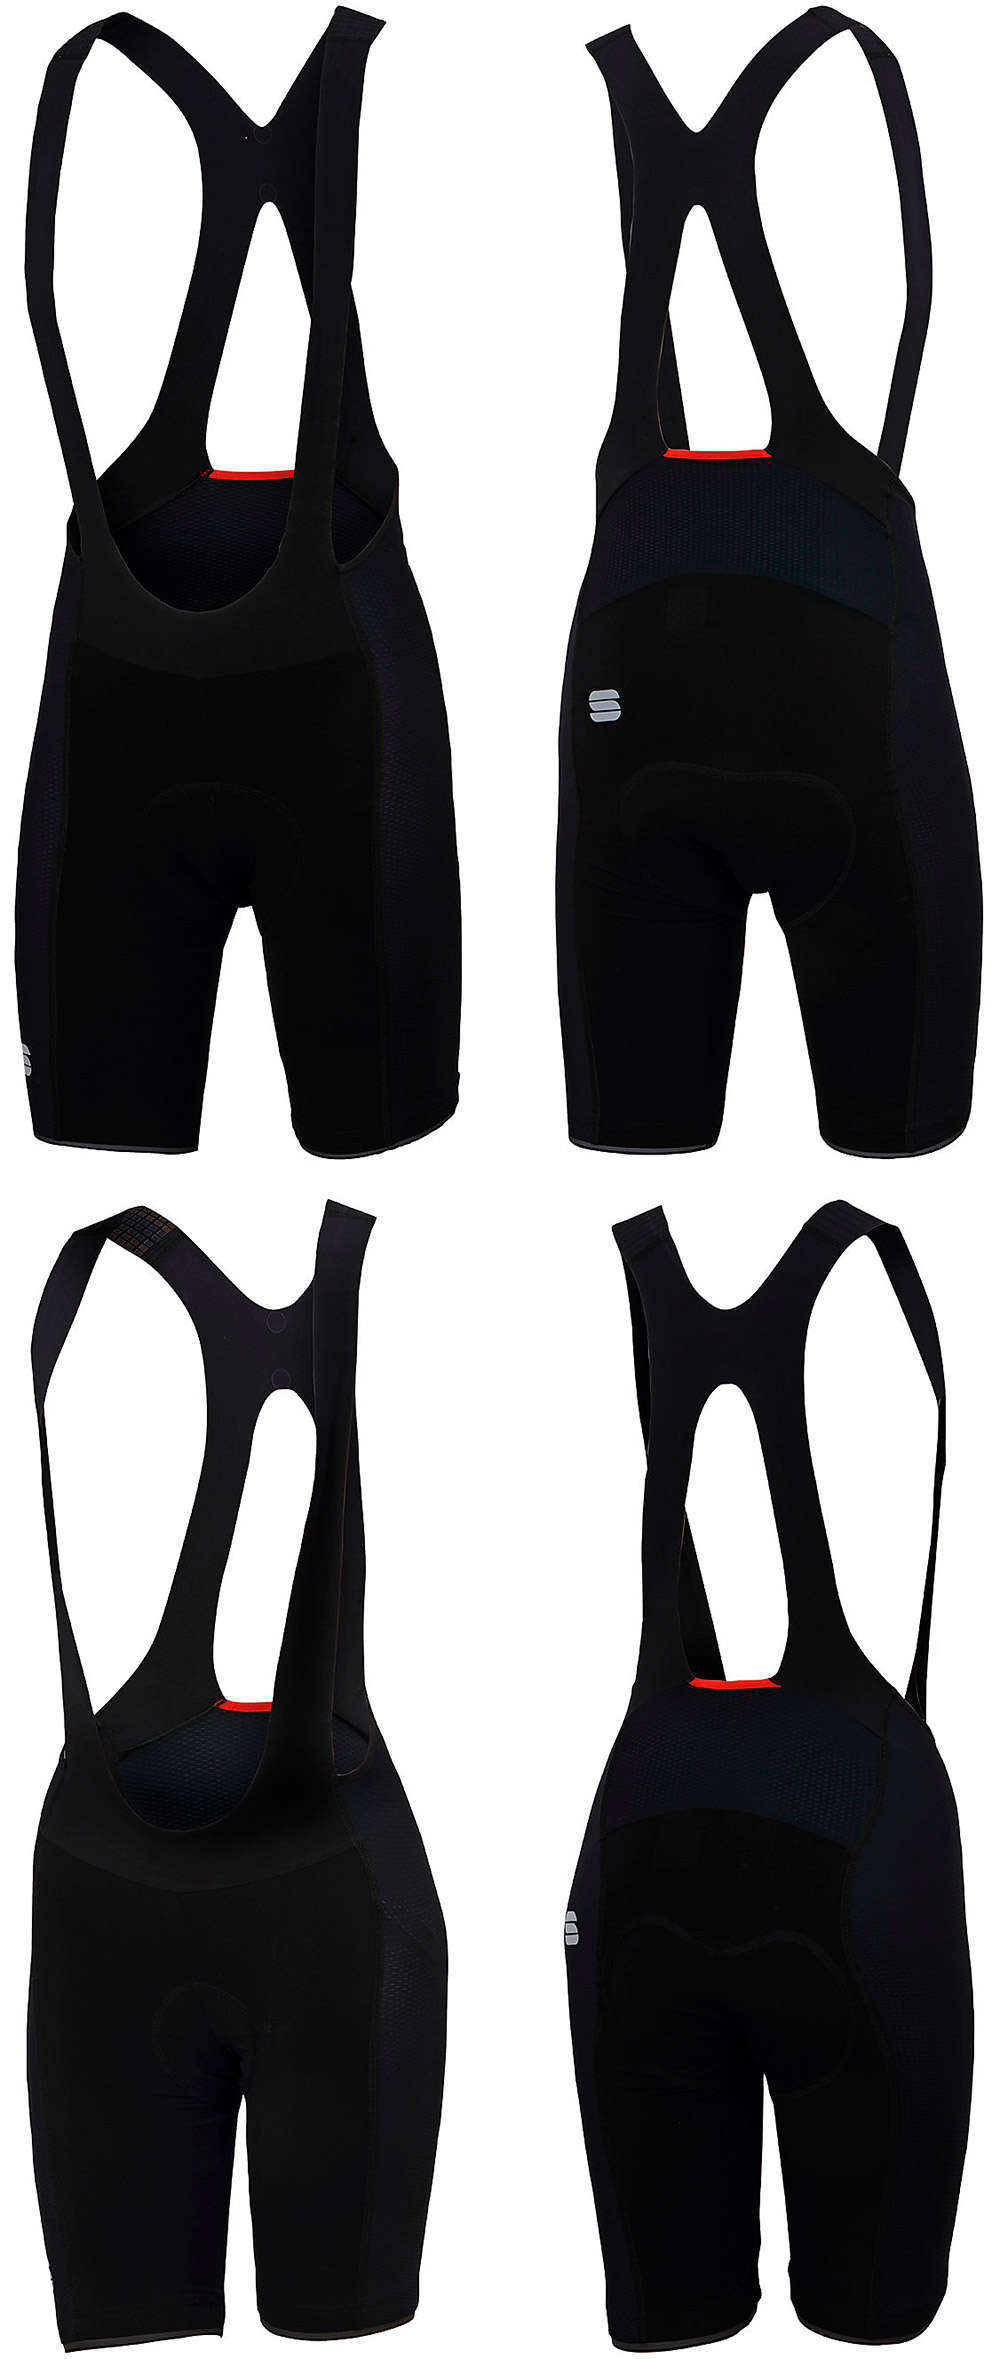 En TodoMountainBike: Sportful Total Comfort, el culotte de verano ideal para largas distancias